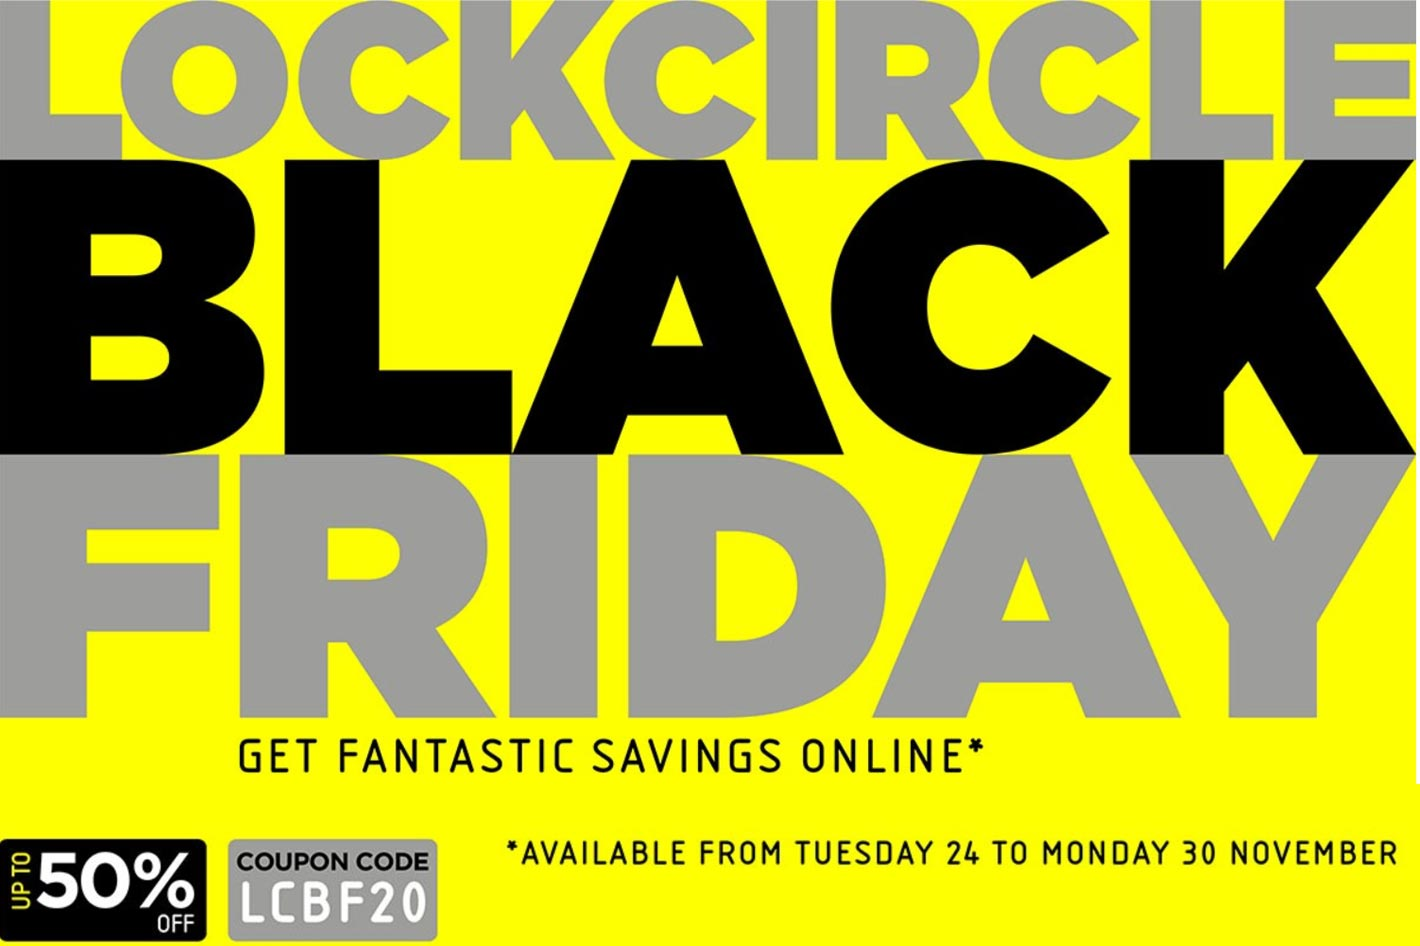 PVC's Black Friday 2020 best deals: look at these bargains we found!